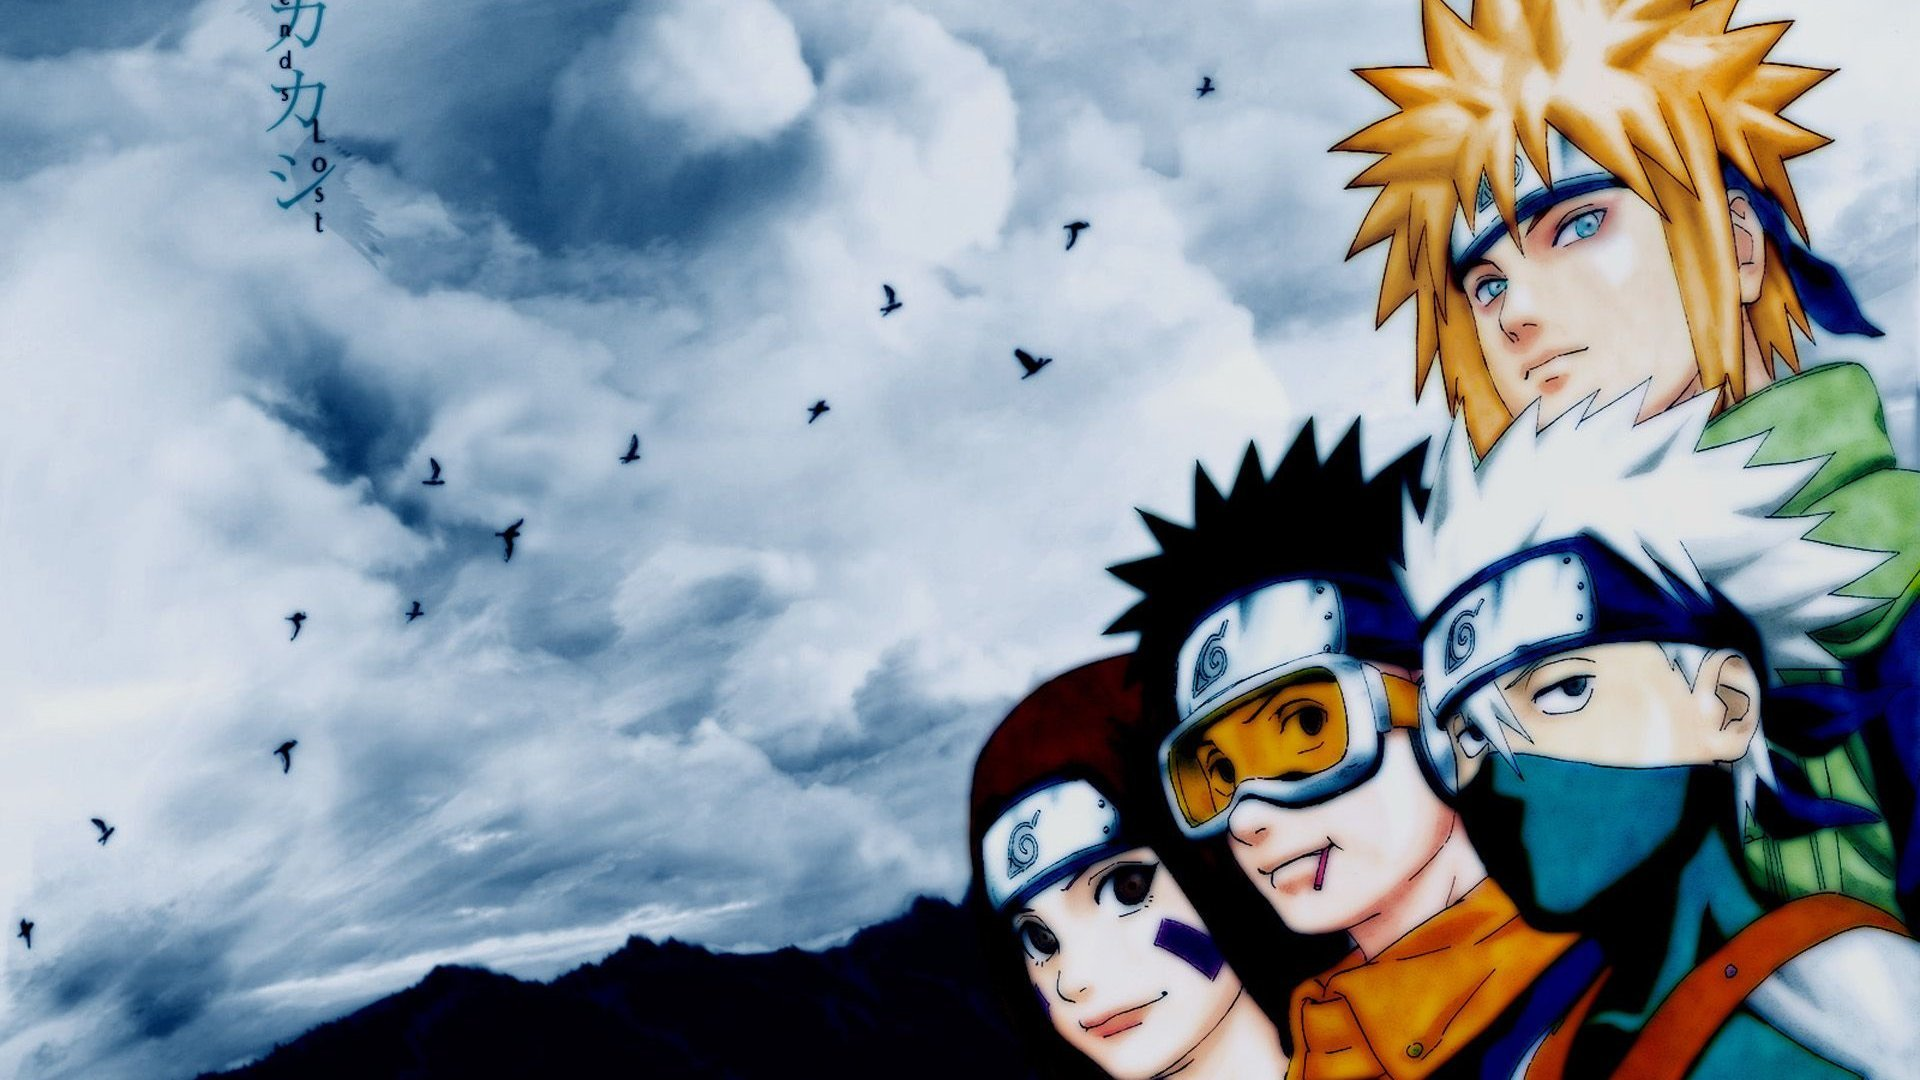 Hot anime Naruto HD Wallpapers 1920x1080 hd Animation wallpaper 1920x1080